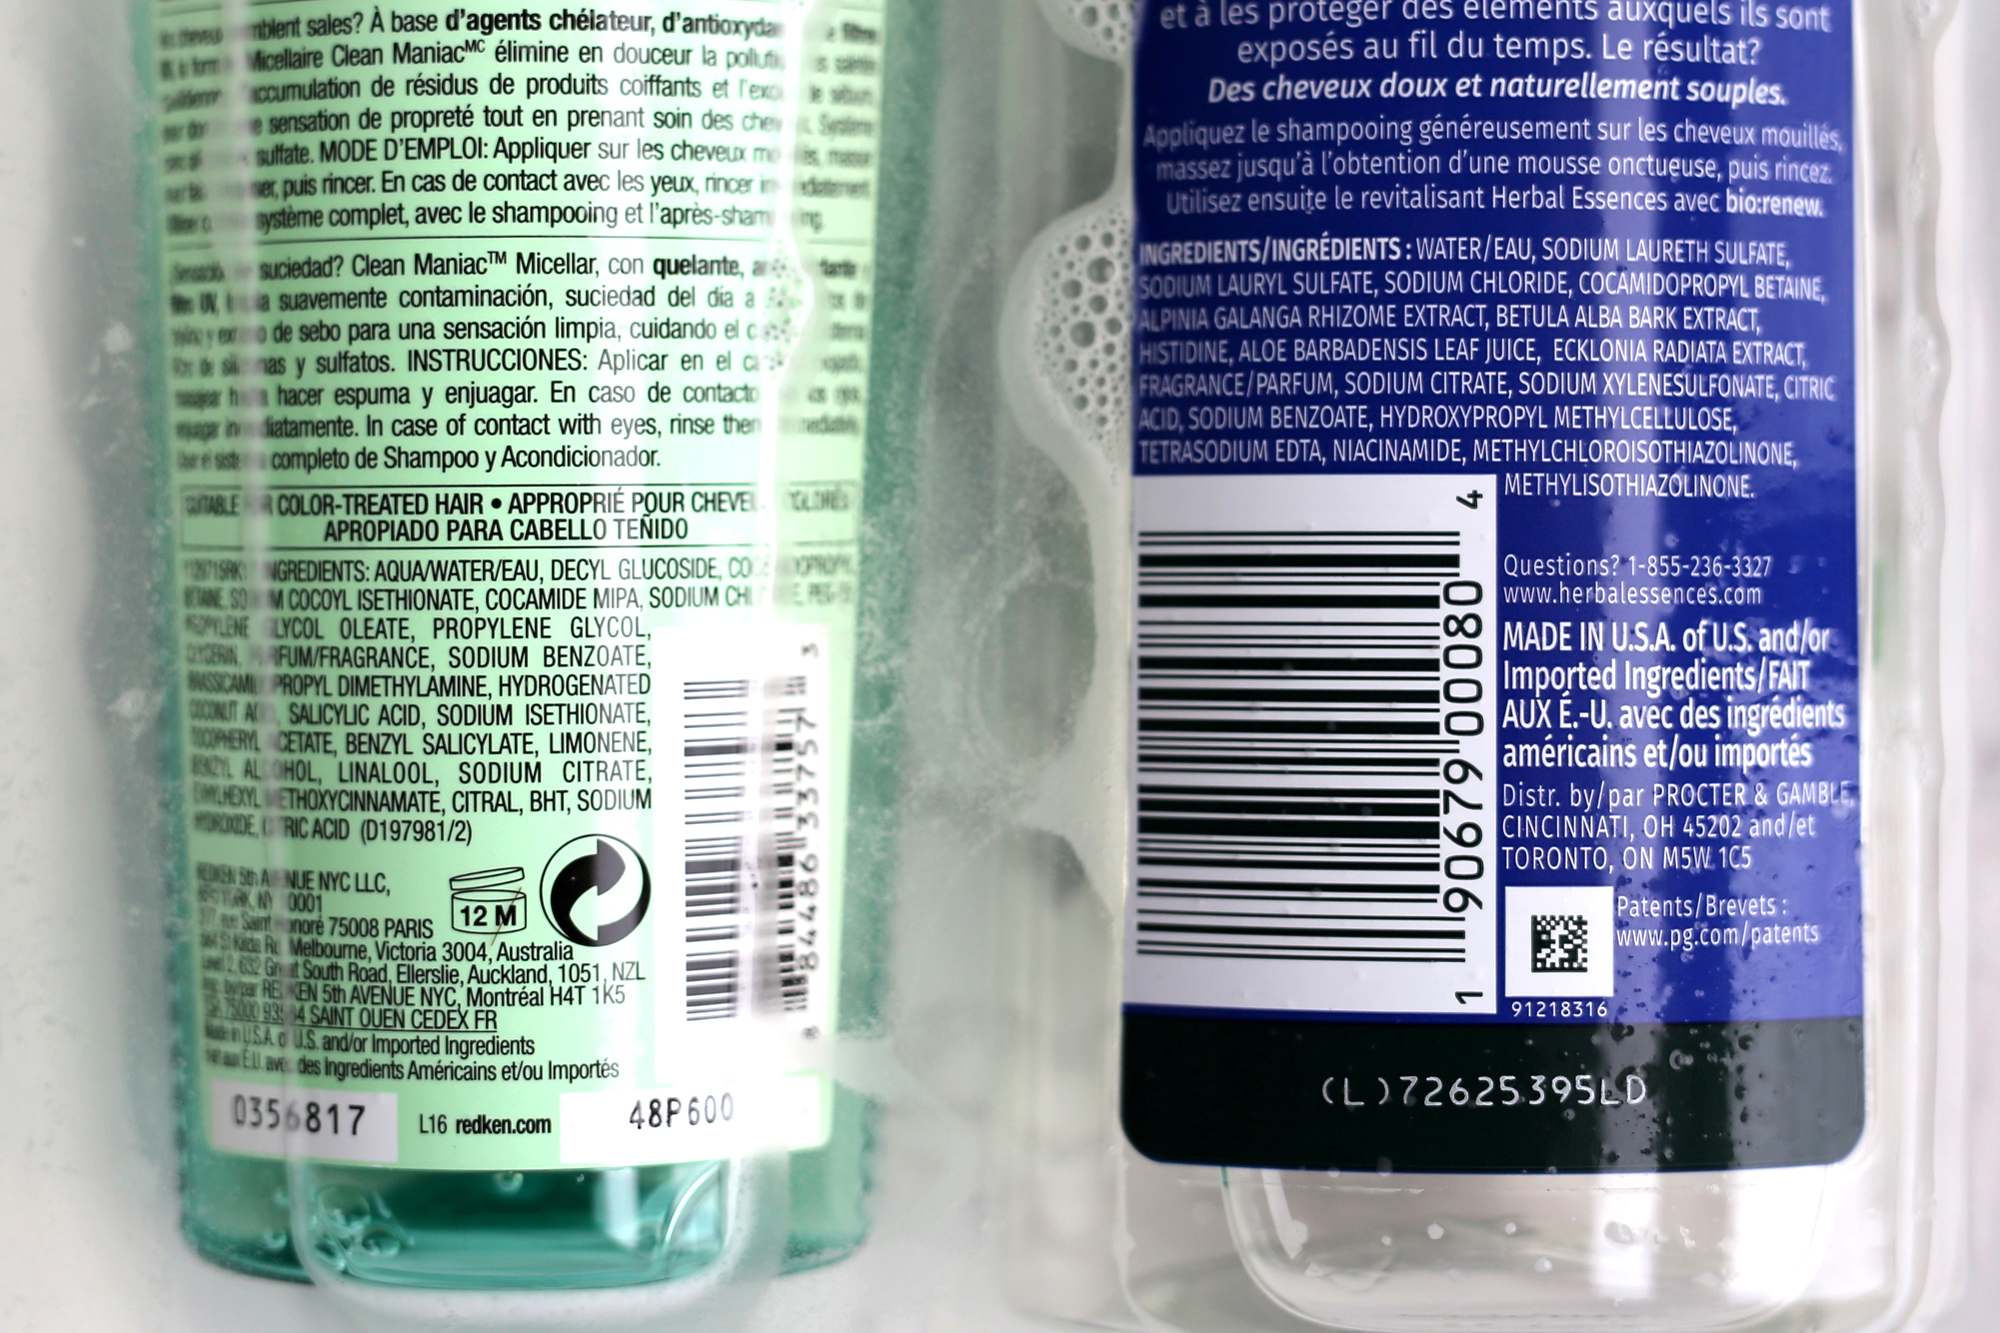 High end vs. drug store micellar shampoo. Redken's (left) is silicone and sulphate-free while Herbal Essences bio:renew (right) contains SLS, a foaming agent which some people avoid as it can be an  irritant  in a small percent of the population.